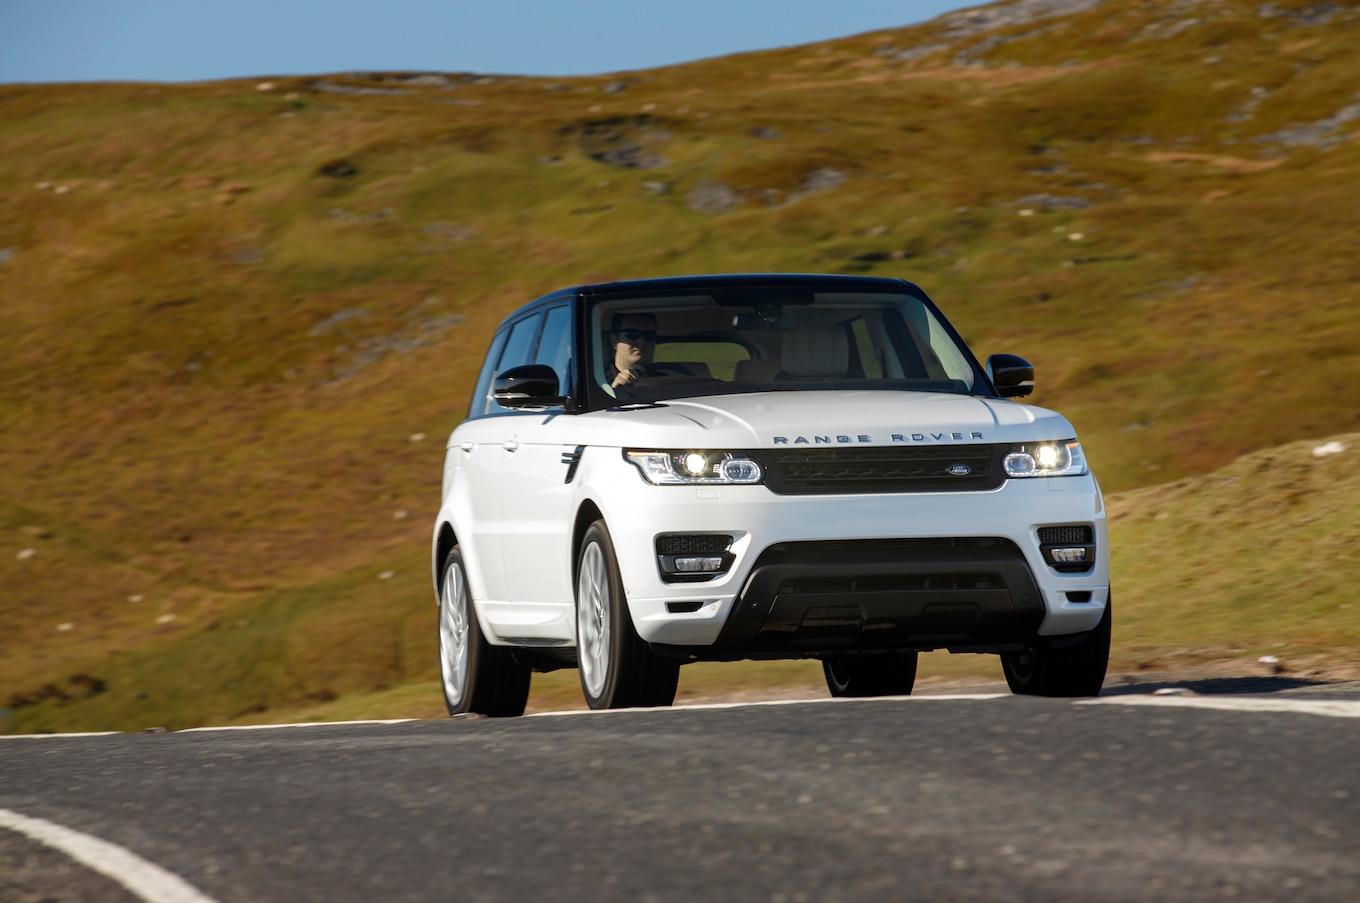 More Than 65 000 Range Rover SUVs Recalled for Faulty Door Latches